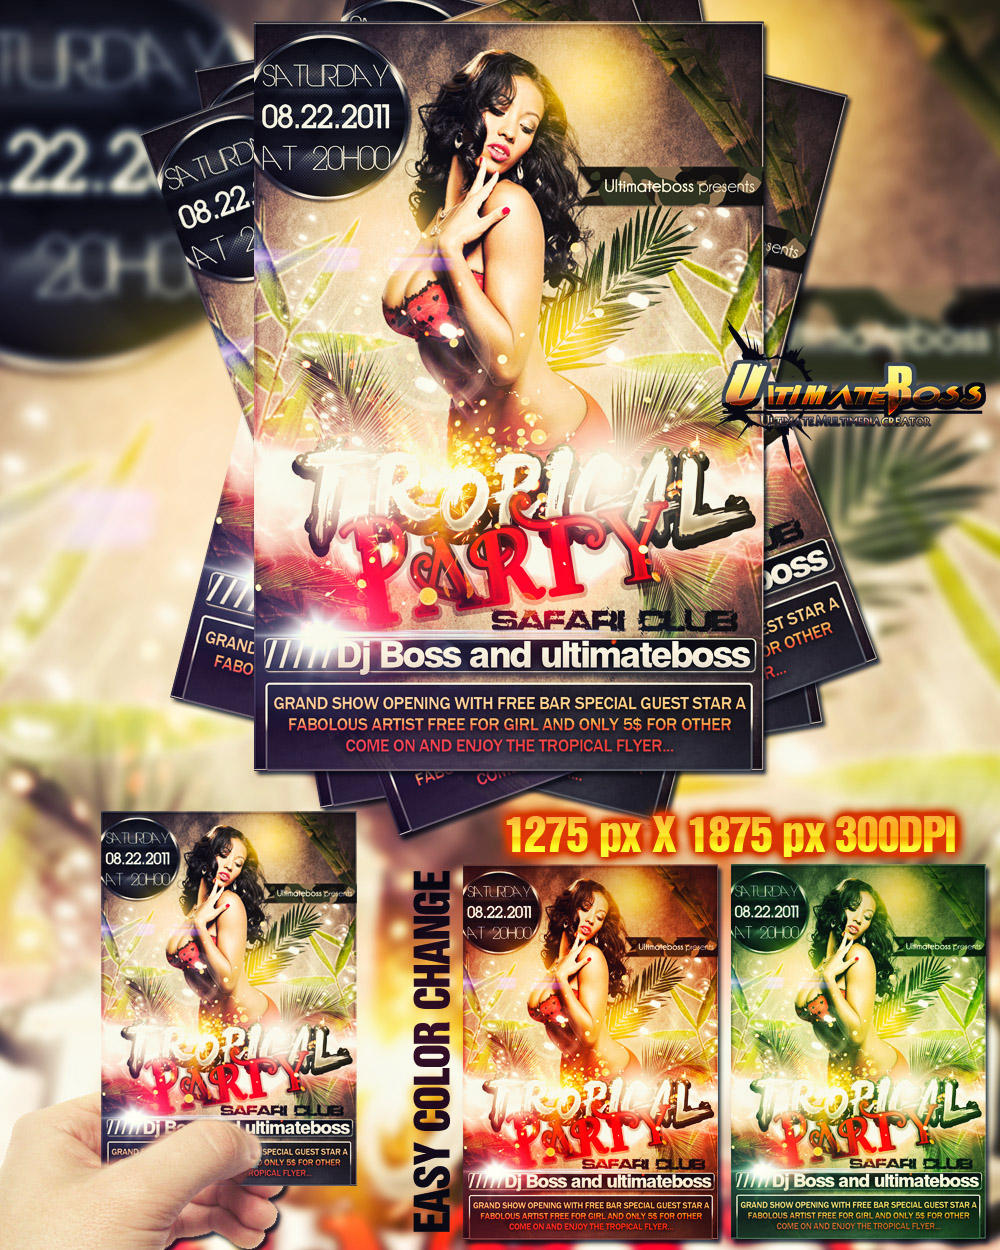 Freemium Tropical Party Flyer By Ultimateboss Freemium Tropical Party Flyer  By Ultimateboss